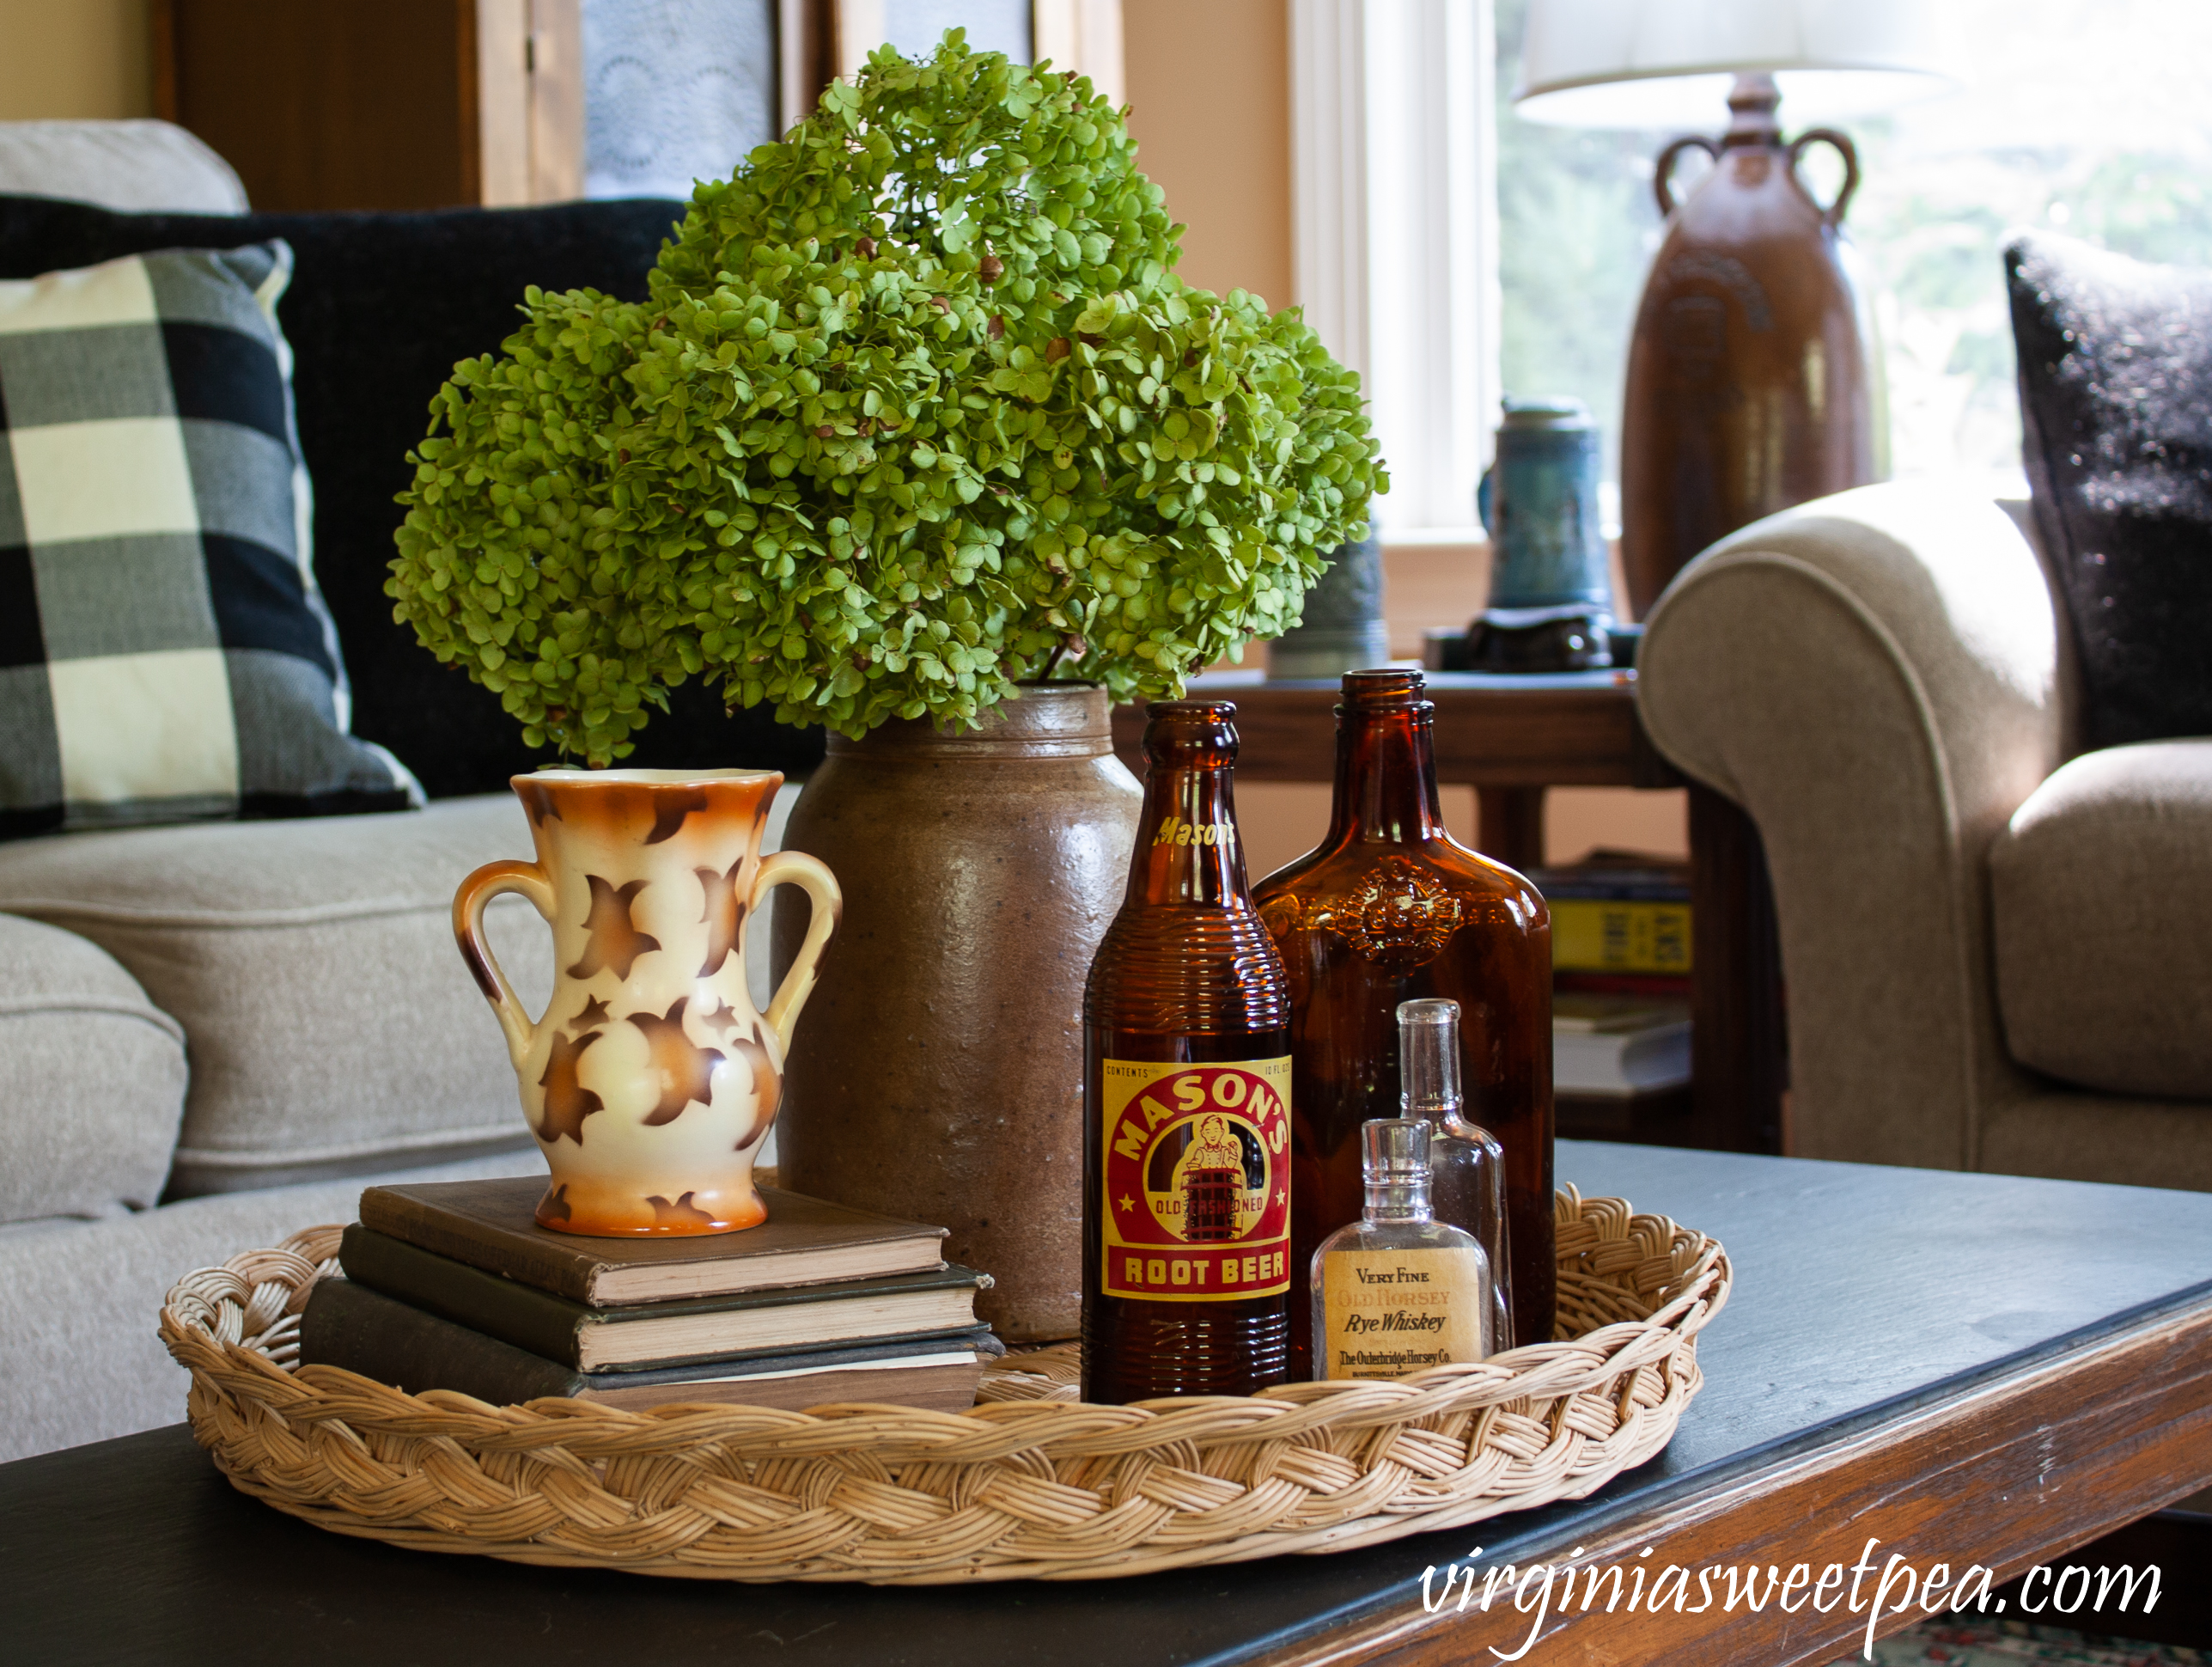 Fall coffee table decor with Hydrangea in a vintage crock, a stack of books with a vintage vase, and three vintage bottles